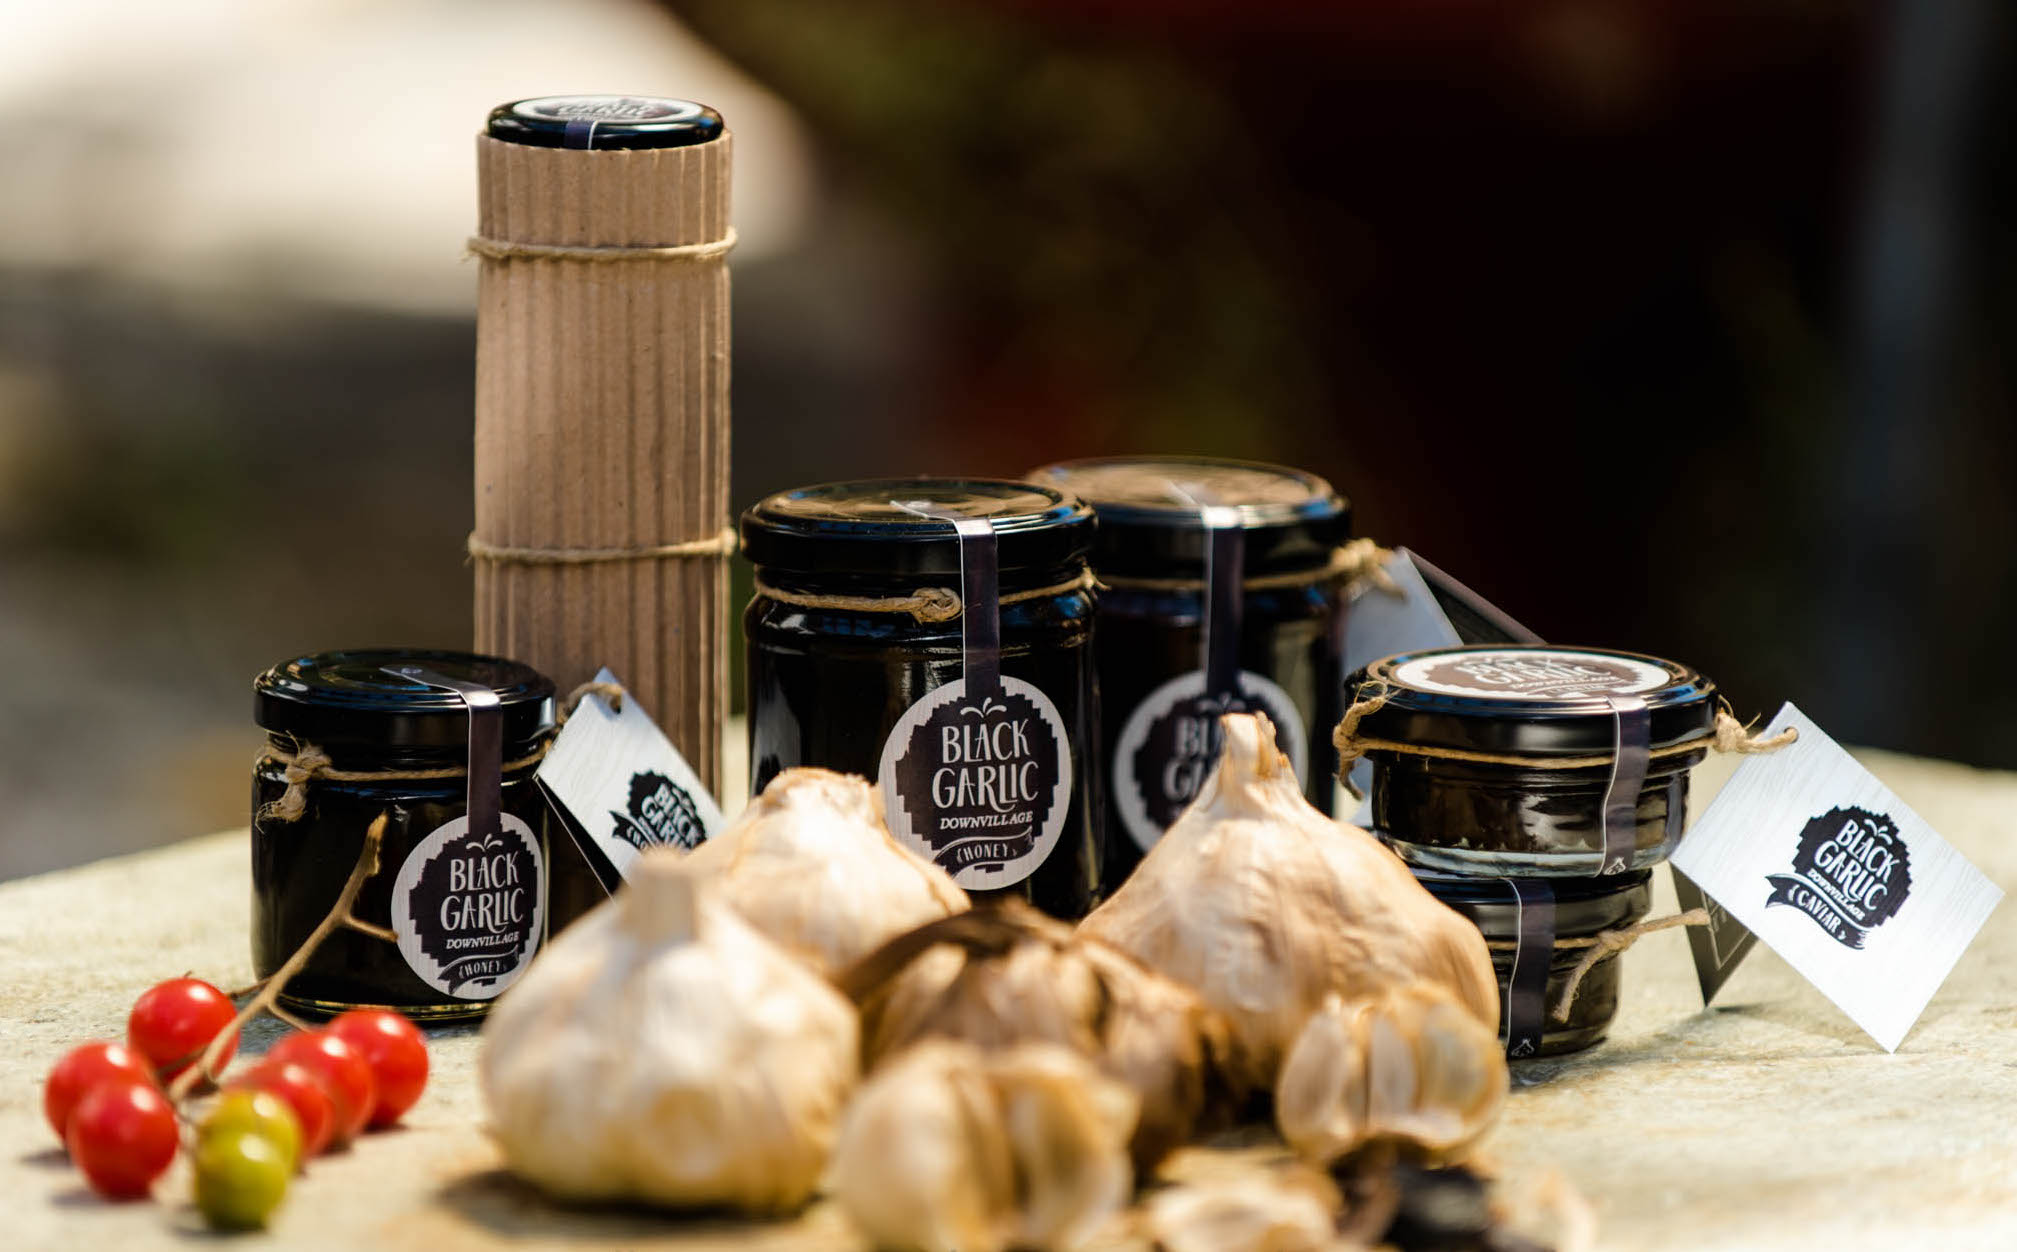 Black garlic downvillage produkty